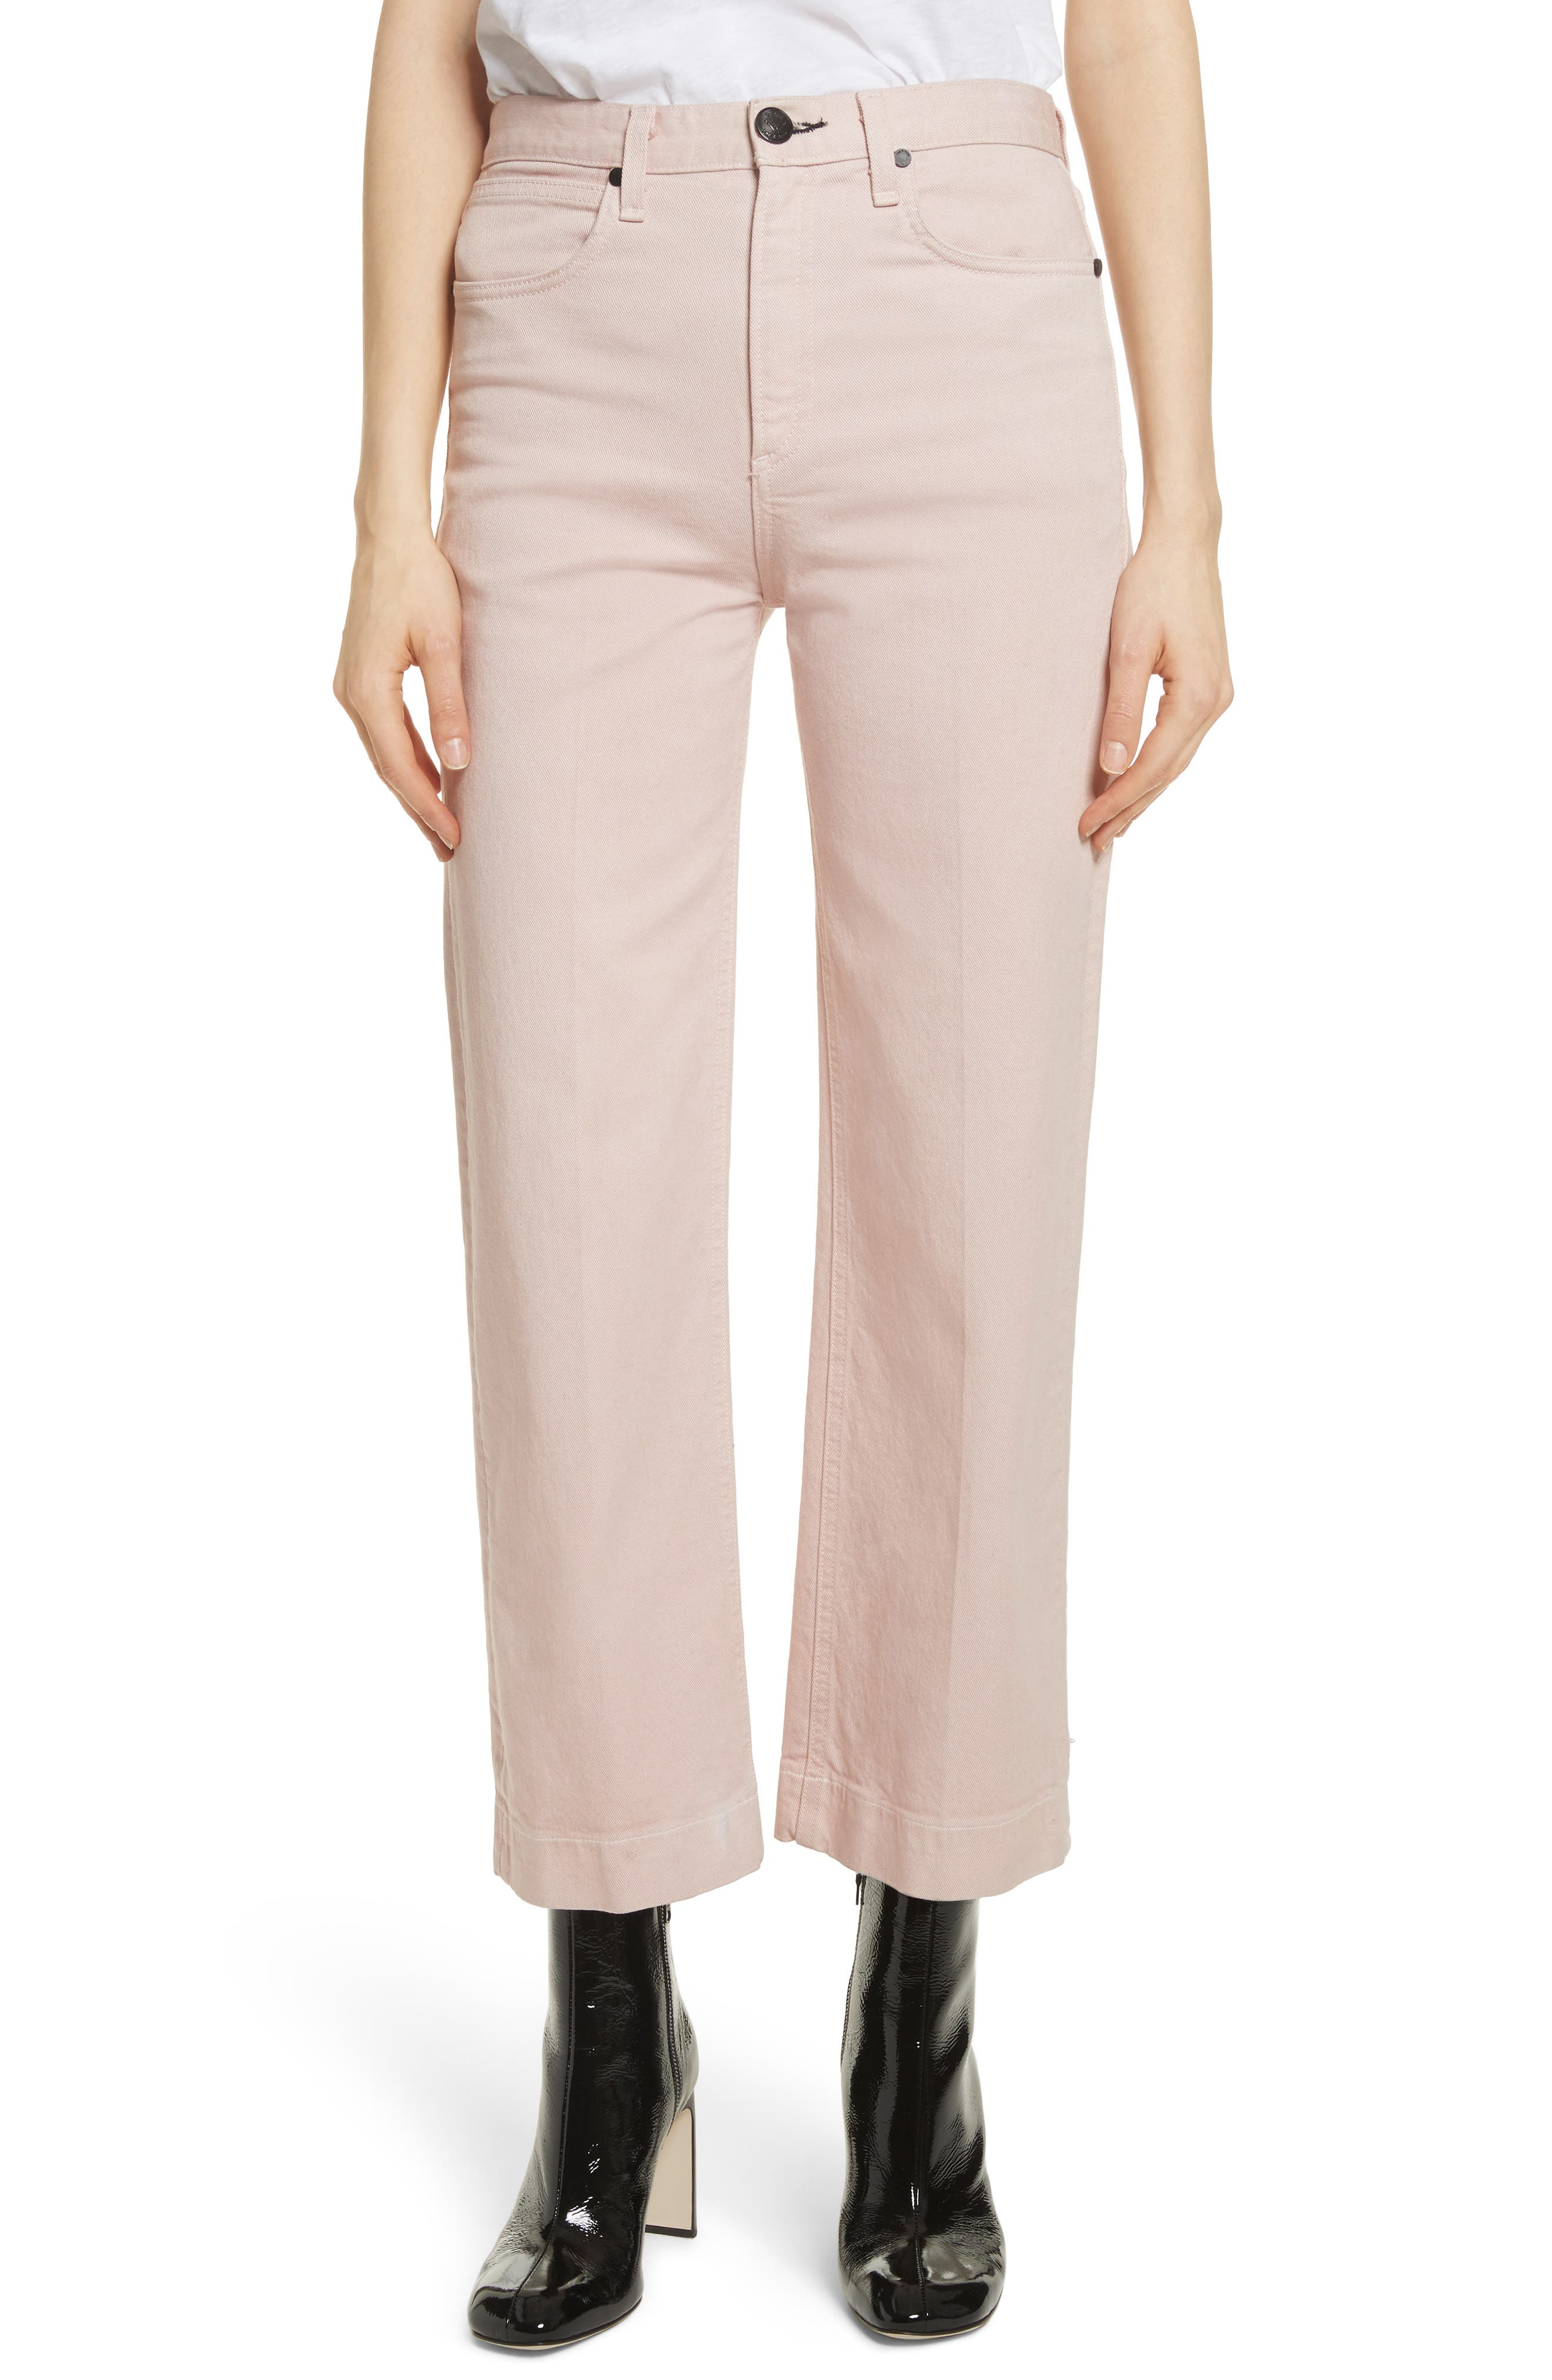 Justine High Waist Trouser Jeans,                         Main,                         color,